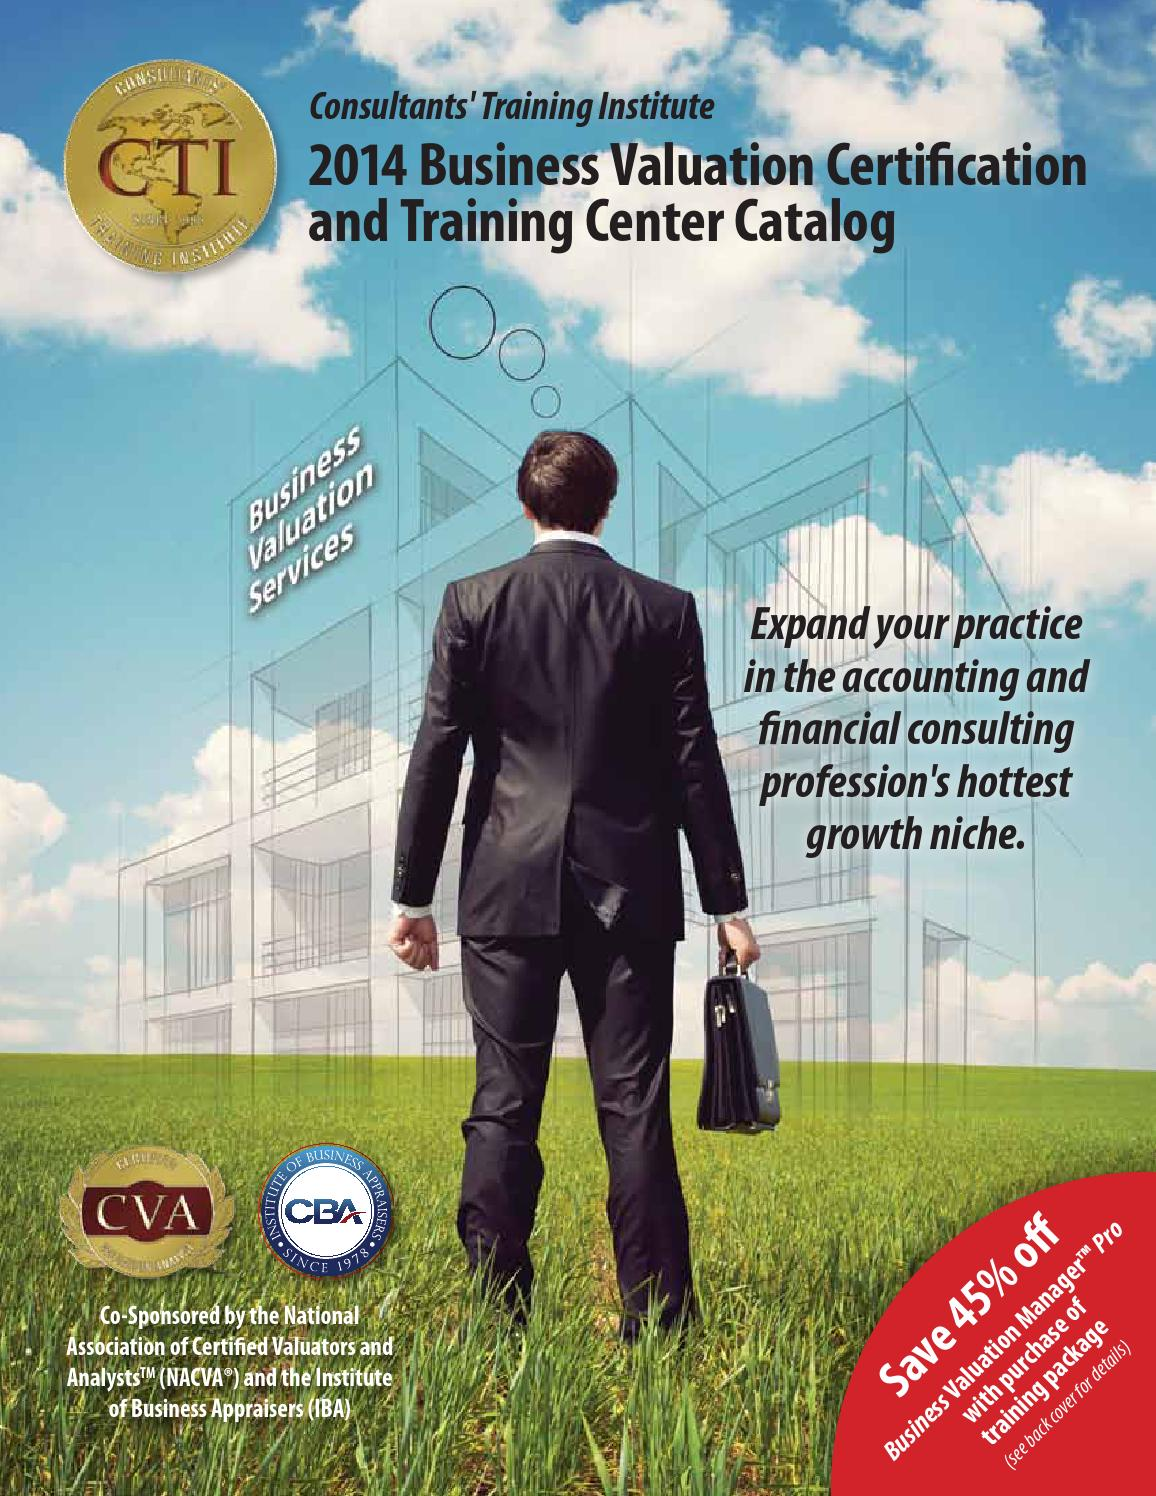 2014 business valuation training center catalog by national 2014 business valuation training center catalog by national association of certified valuators and analysts issuu 1betcityfo Choice Image